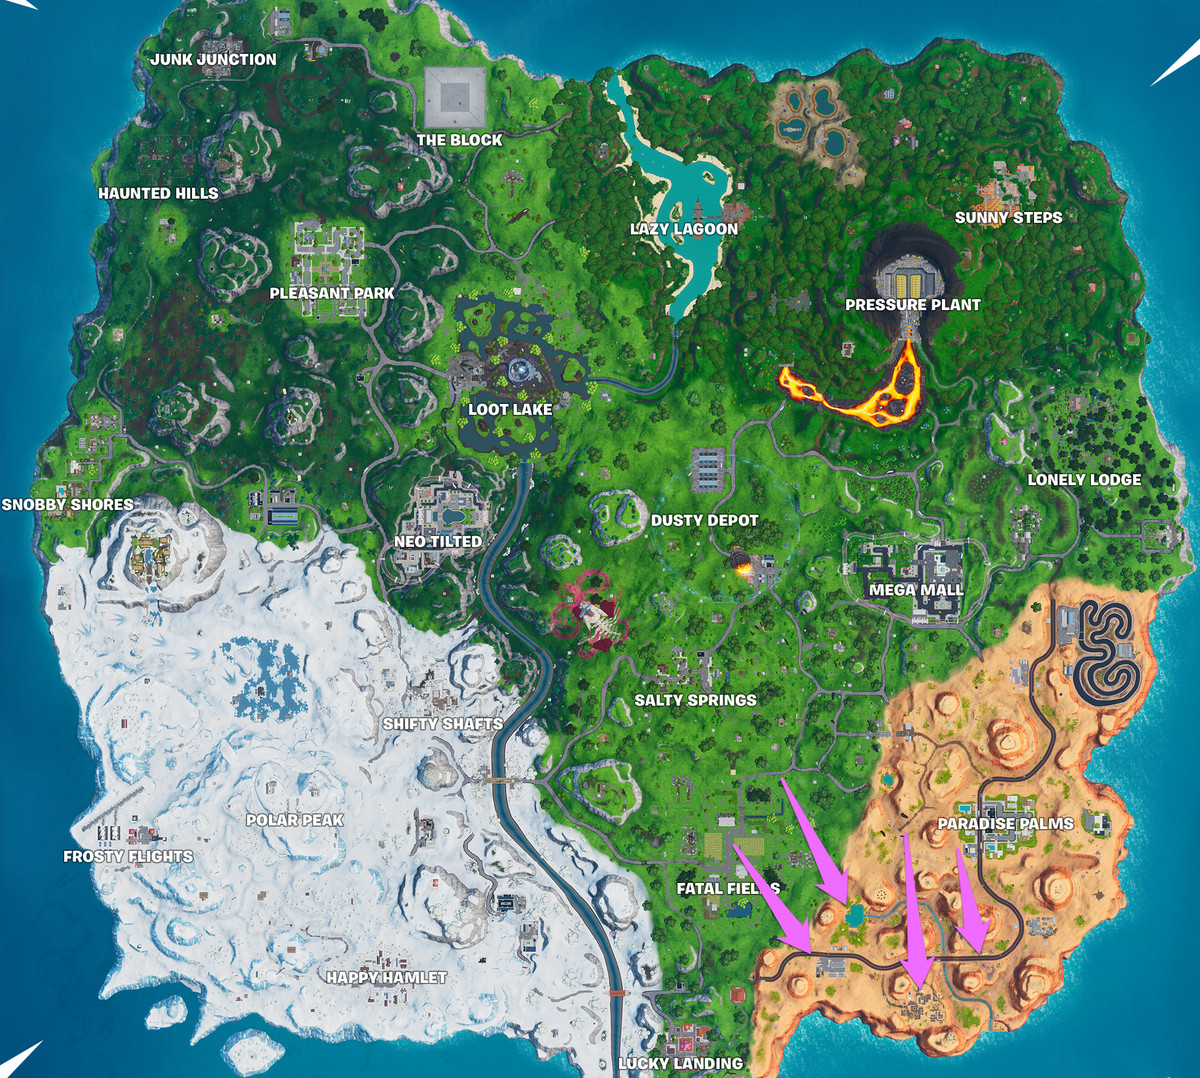 A Fortnite map with the locations of several Vault Symbols marked